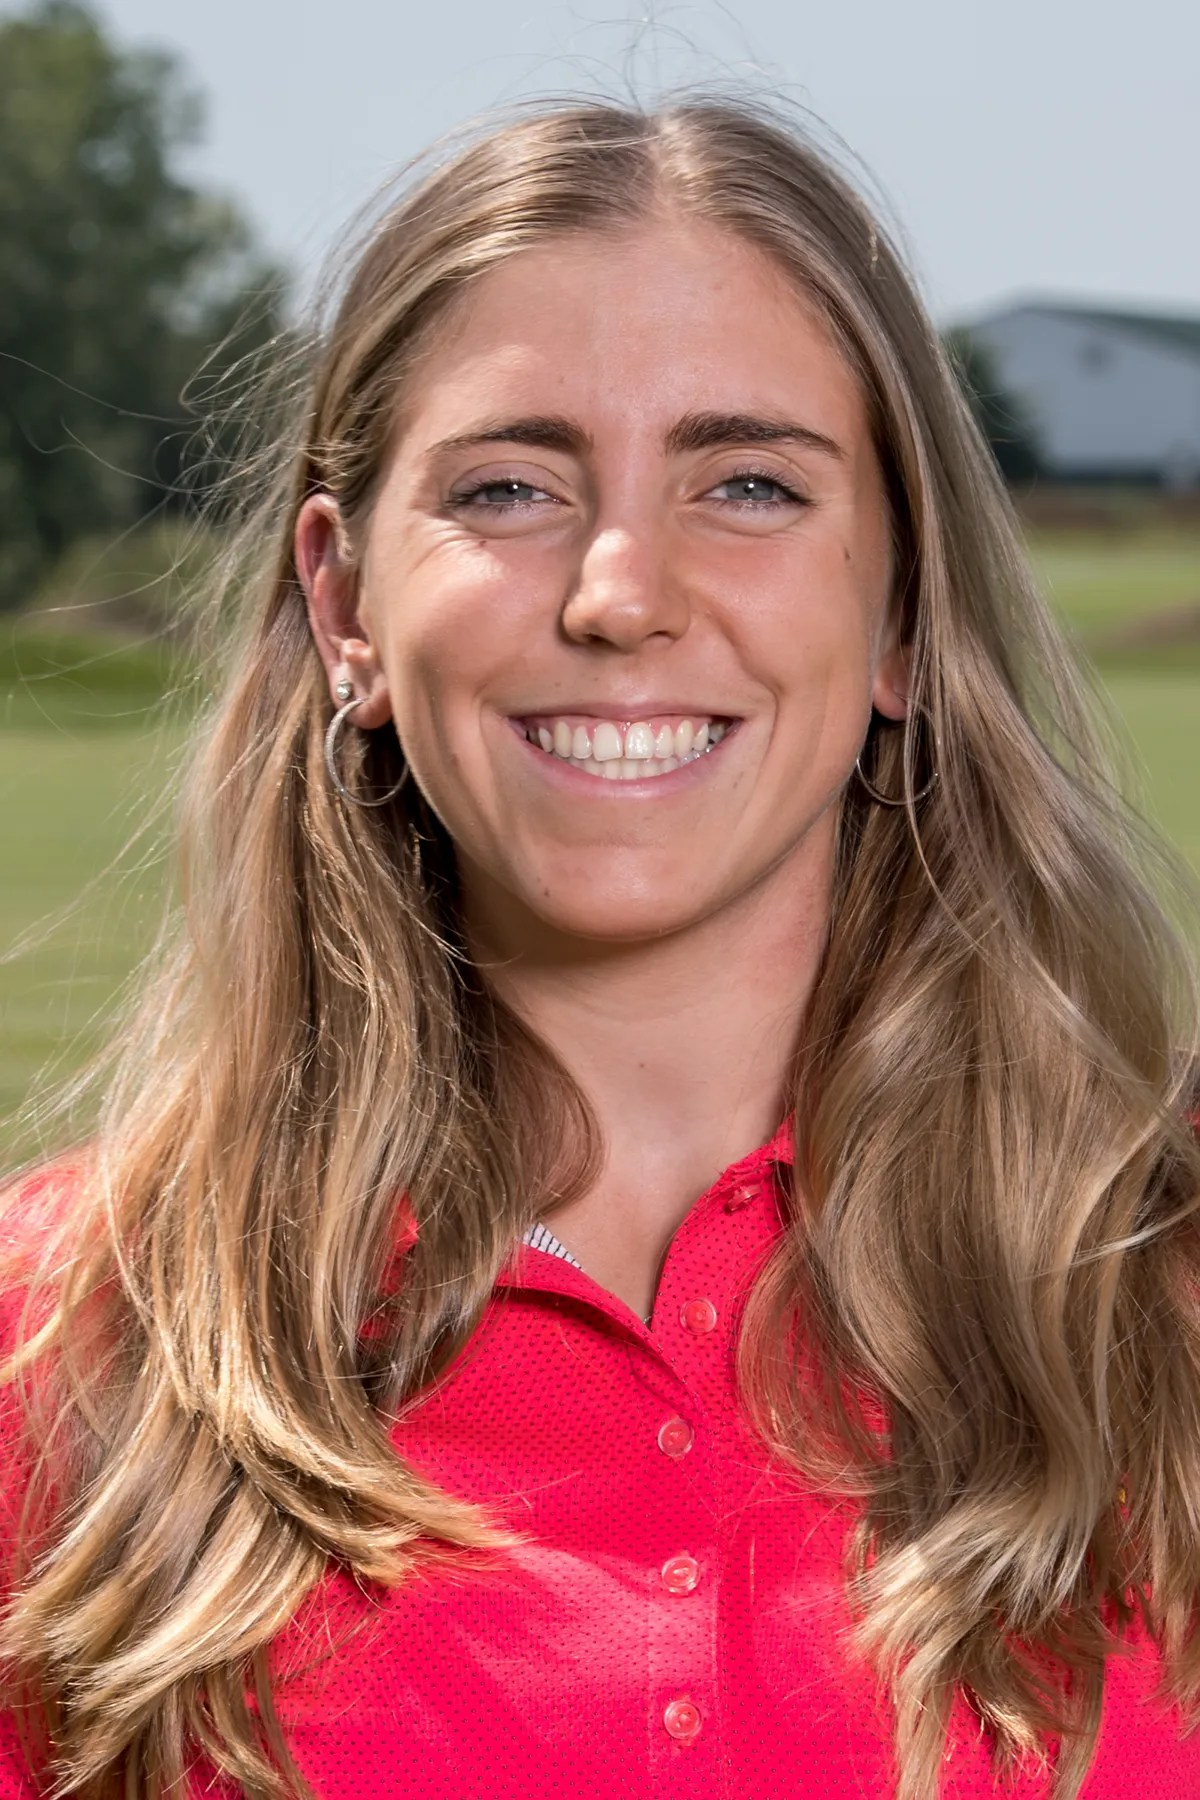 Police: Suspect in Iowa State golfer's slaying wanted to rape and kill